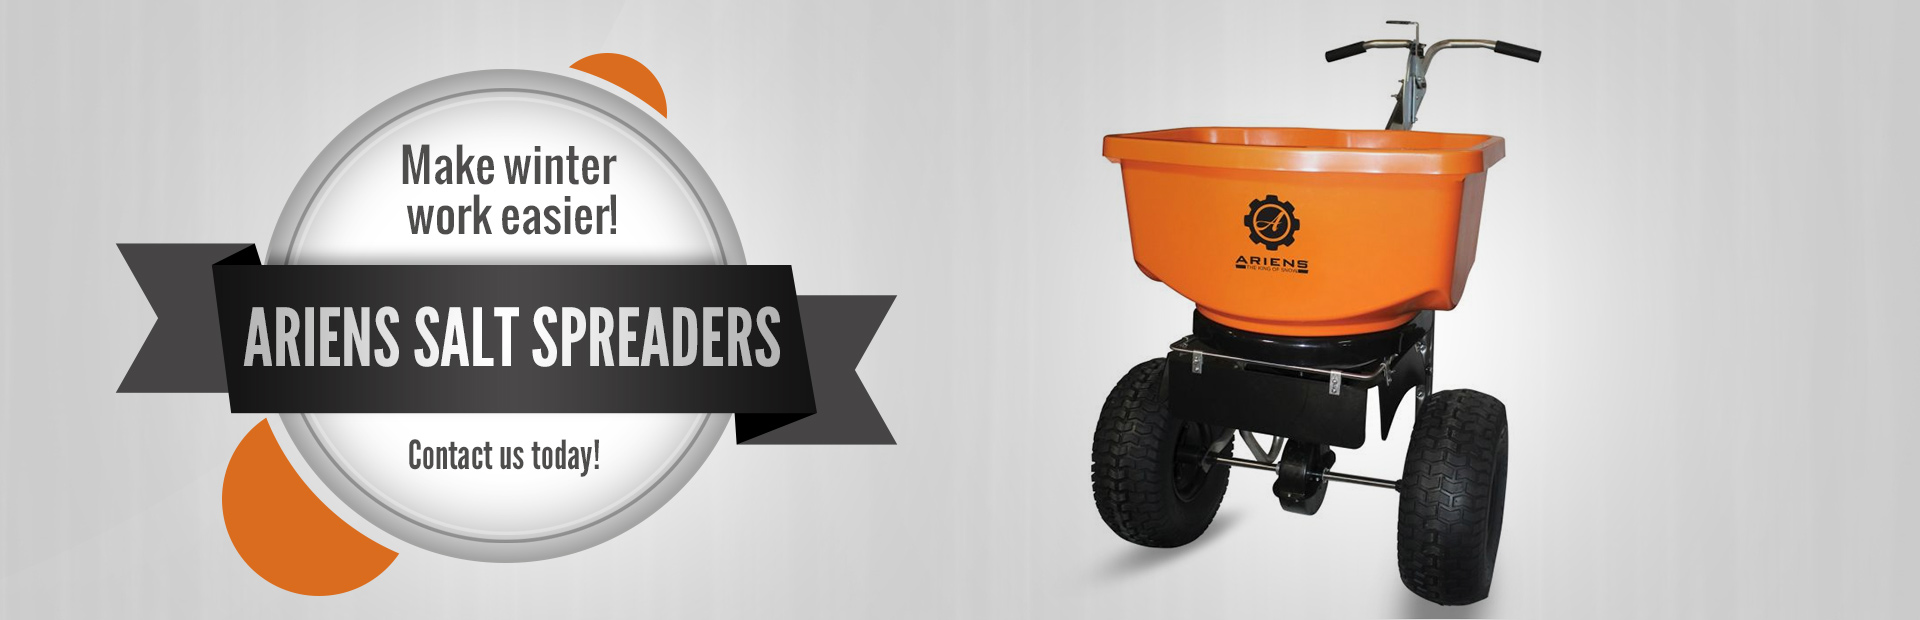 Make winter work easier with Ariens salt spreaders.